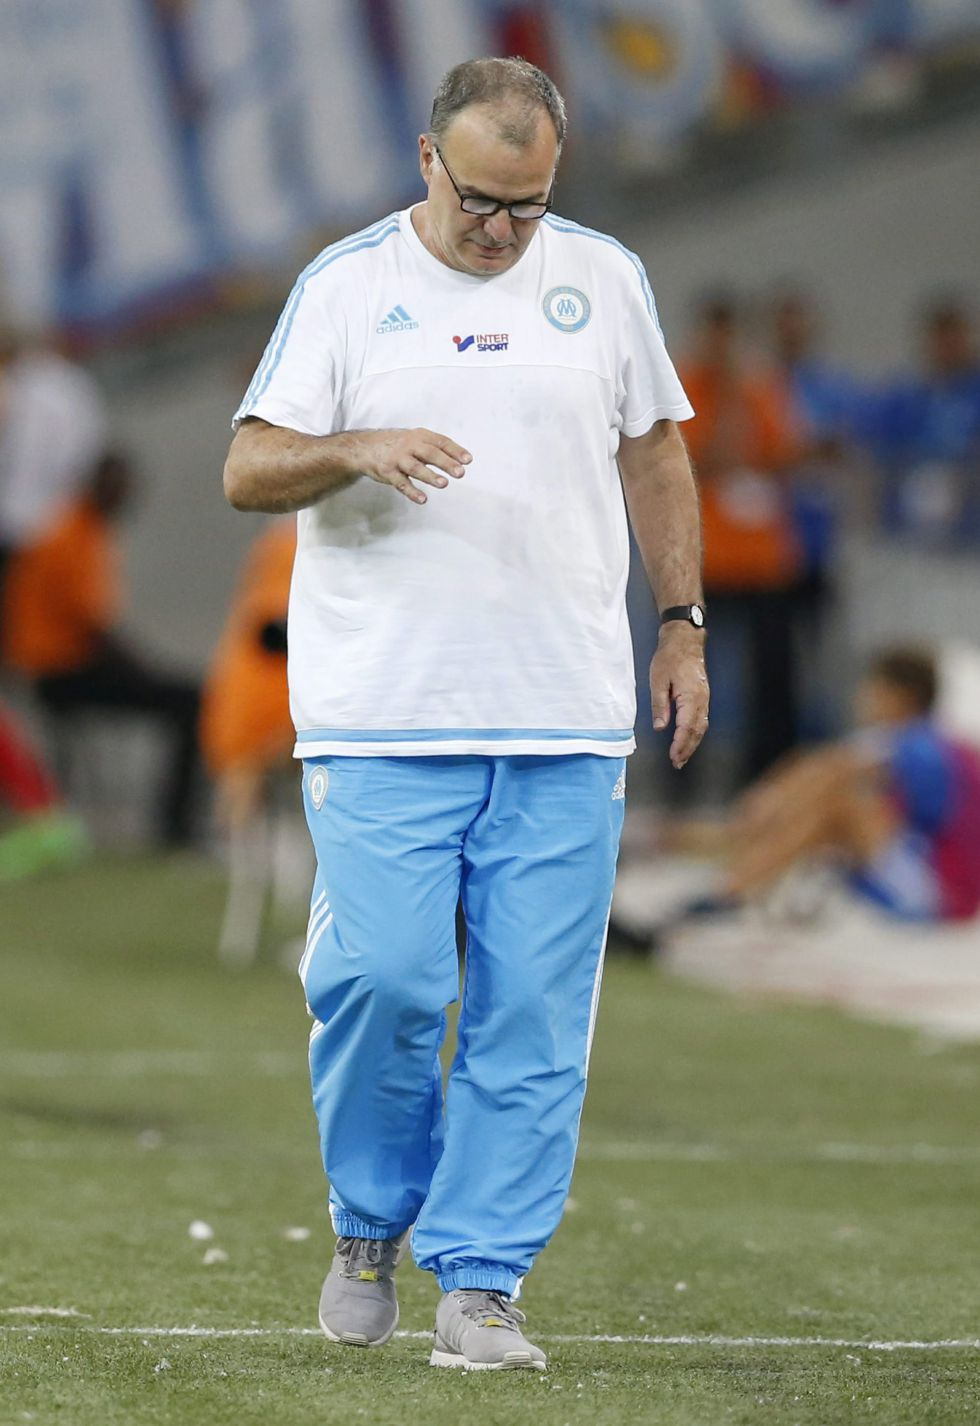 ¡Marcelo Bielsa dice, no!